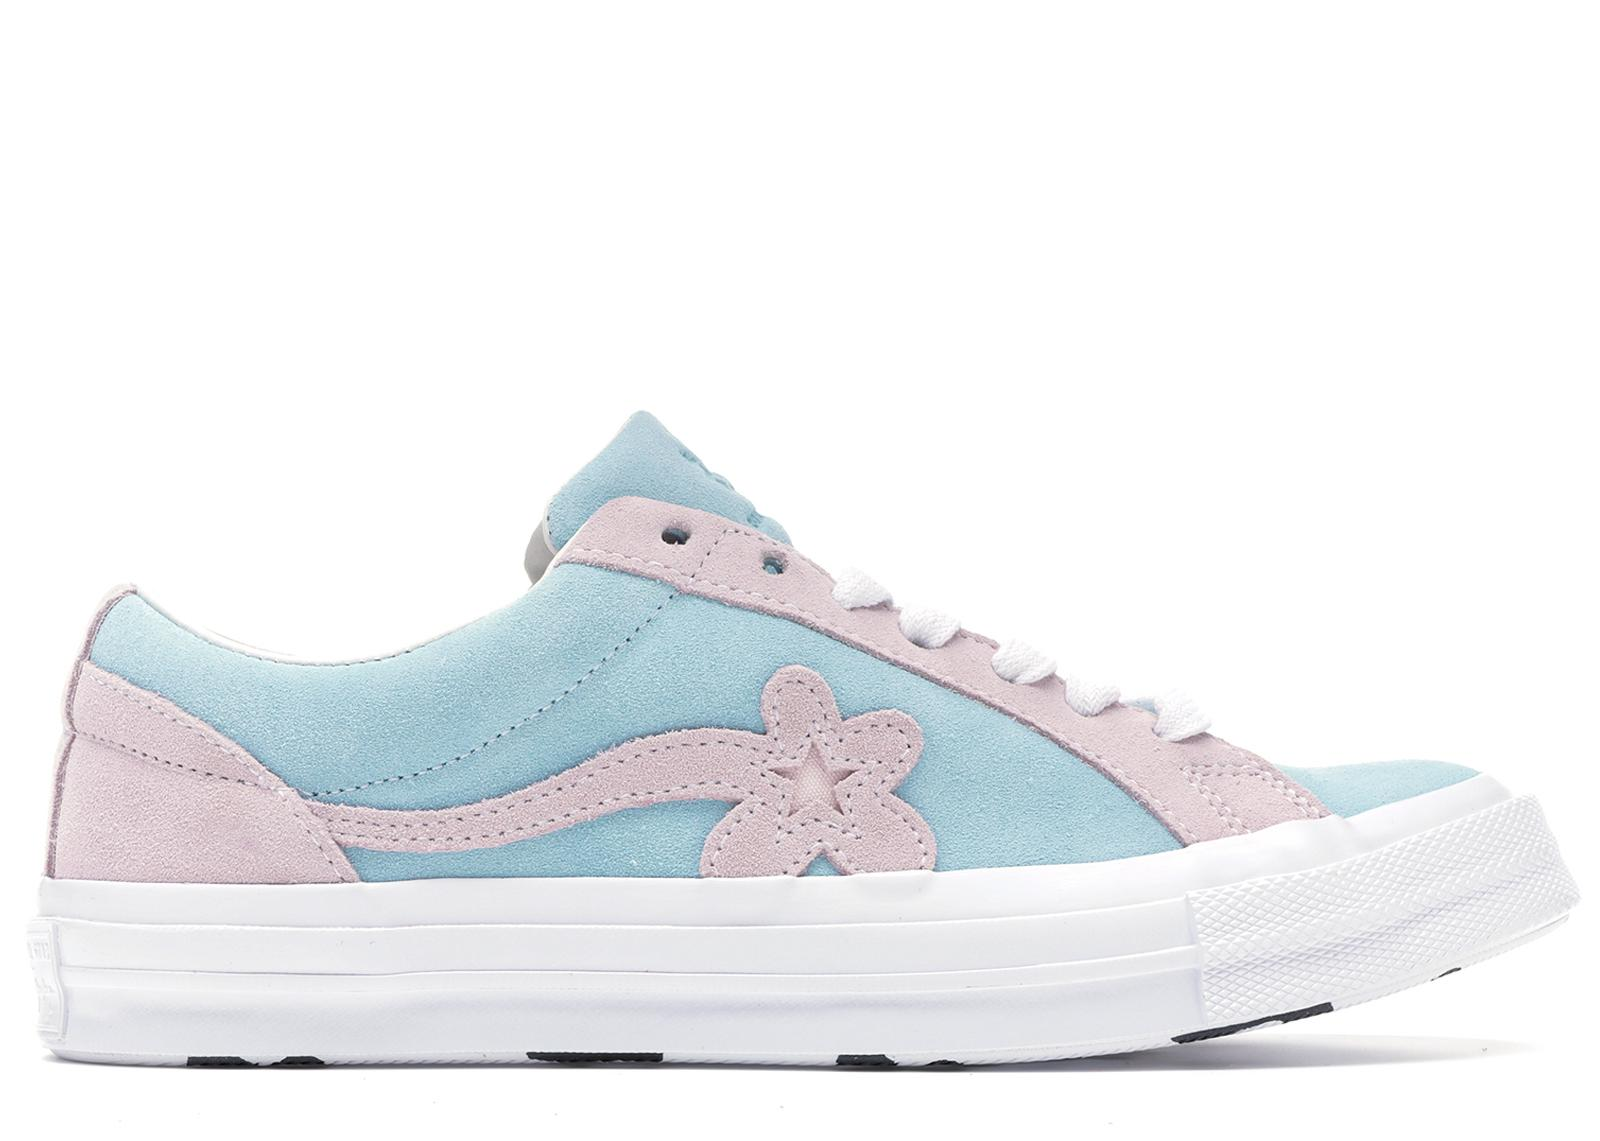 One Star Ox Tyler The Creator Golf Le Fleur Light Blue Pink